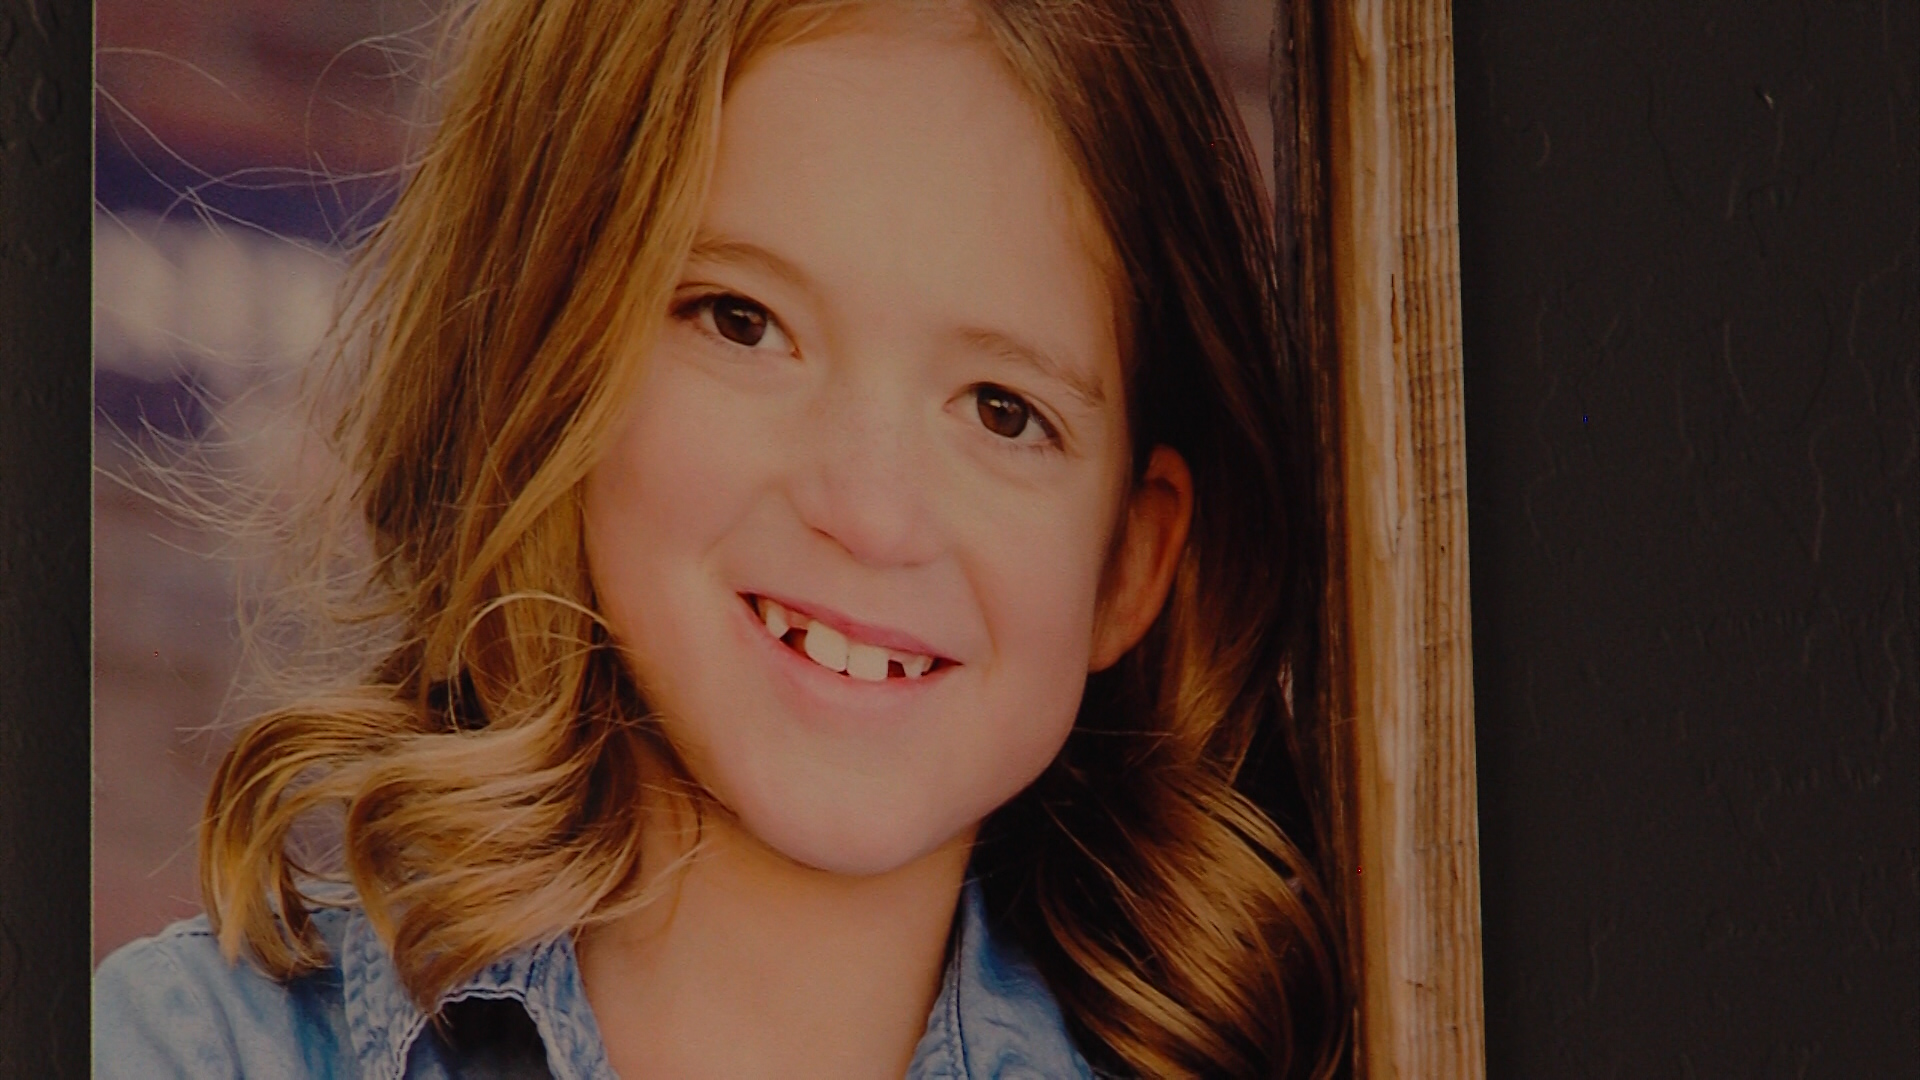 Family searches for answers after daughter, 8, dies from flu